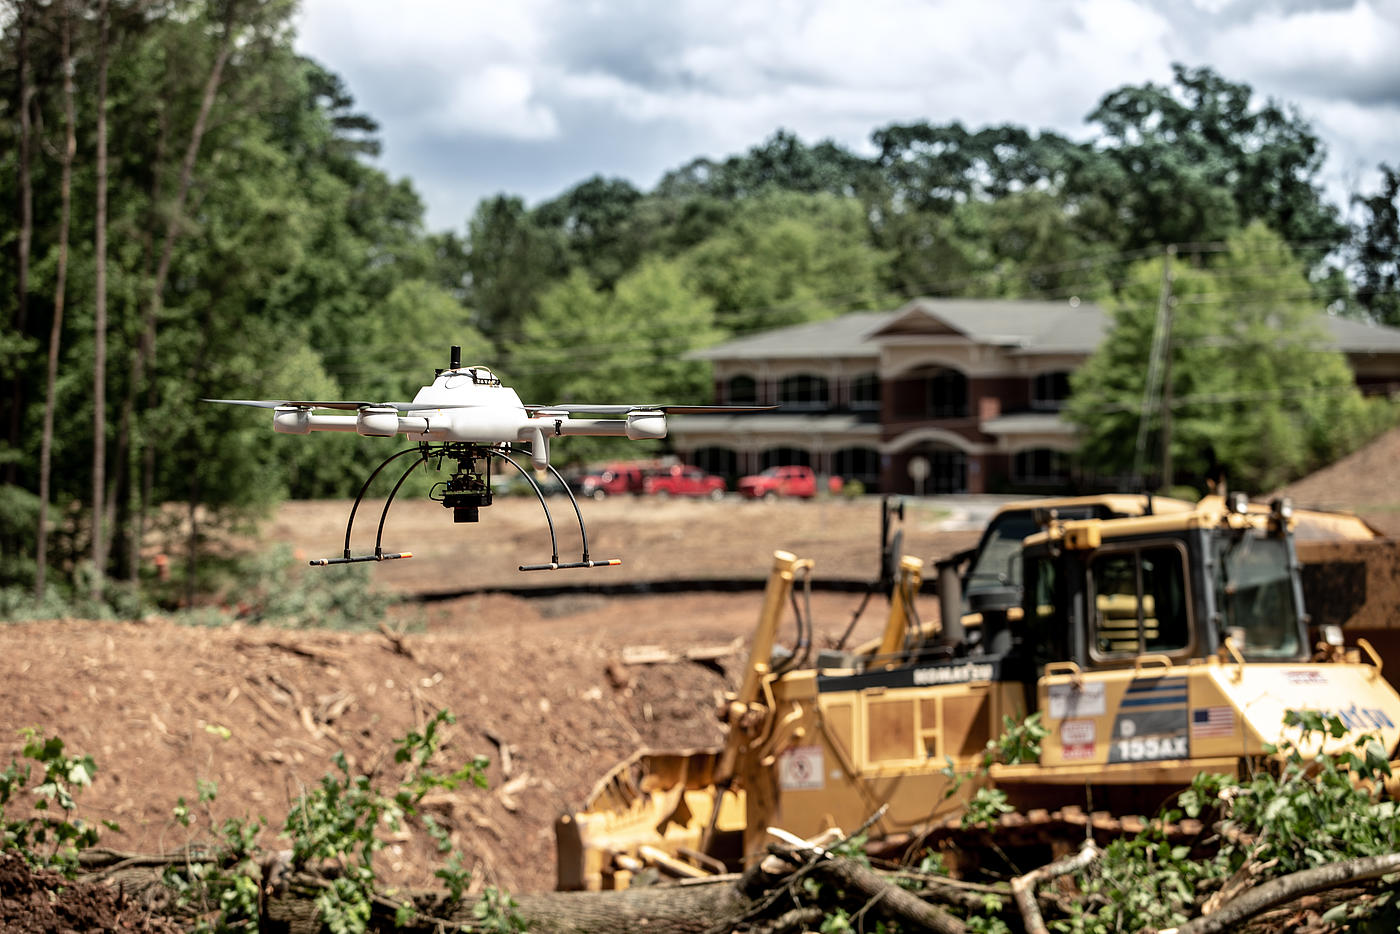 Construction Companies Are Reaping Massive Benefits from Early UAV